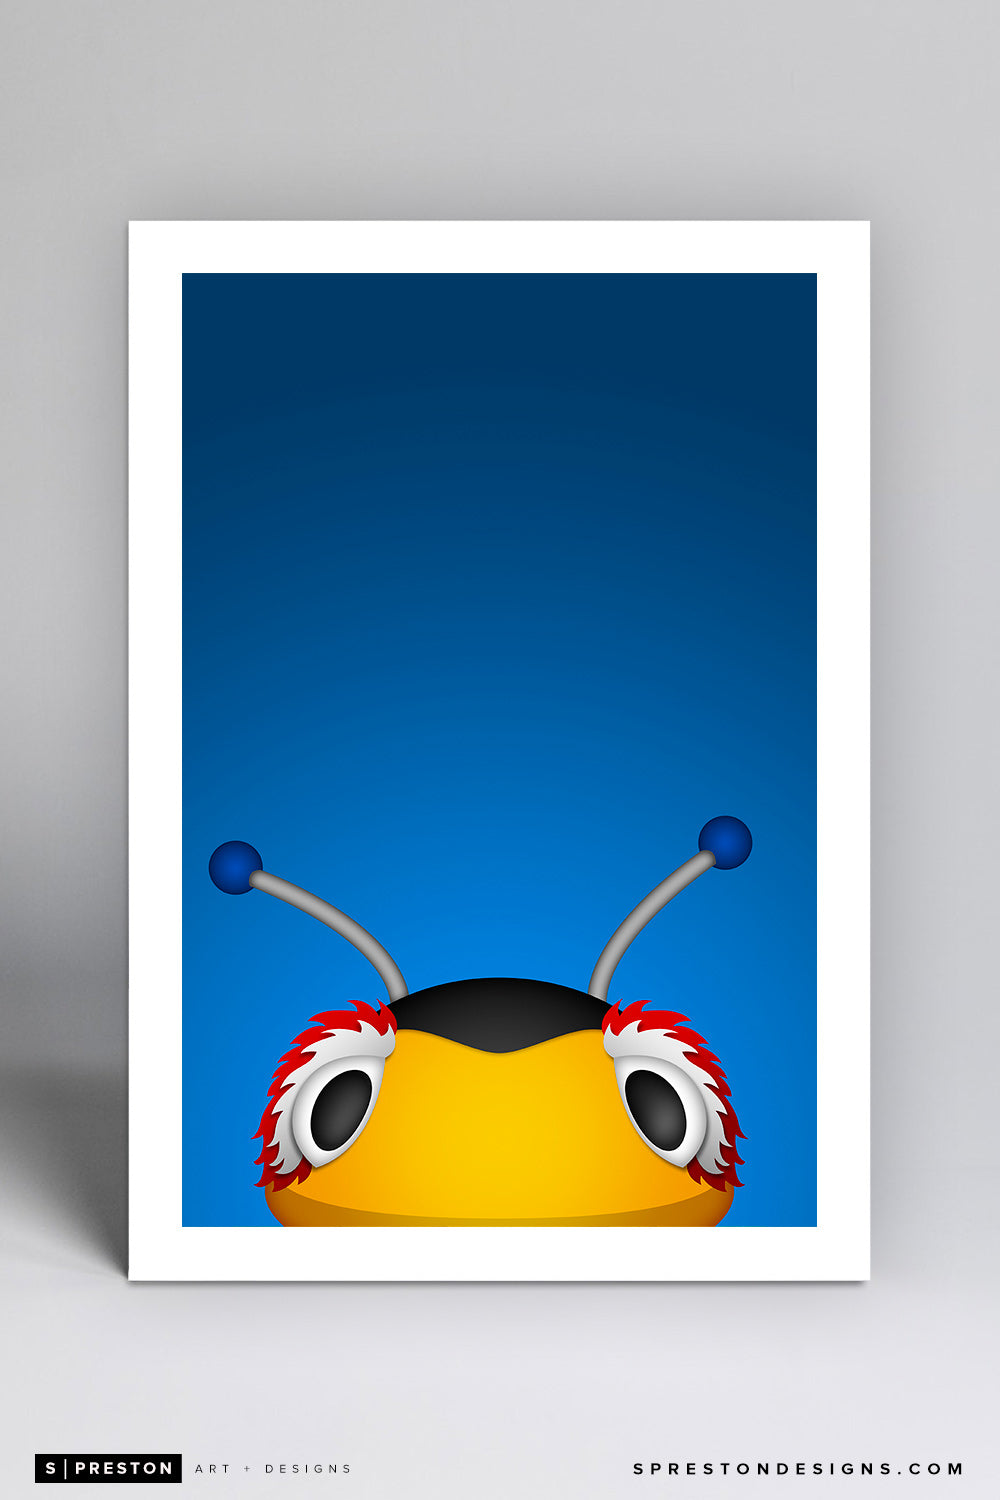 Minimalist Thunderbug - Tampa Bay Lightning - S. Preston